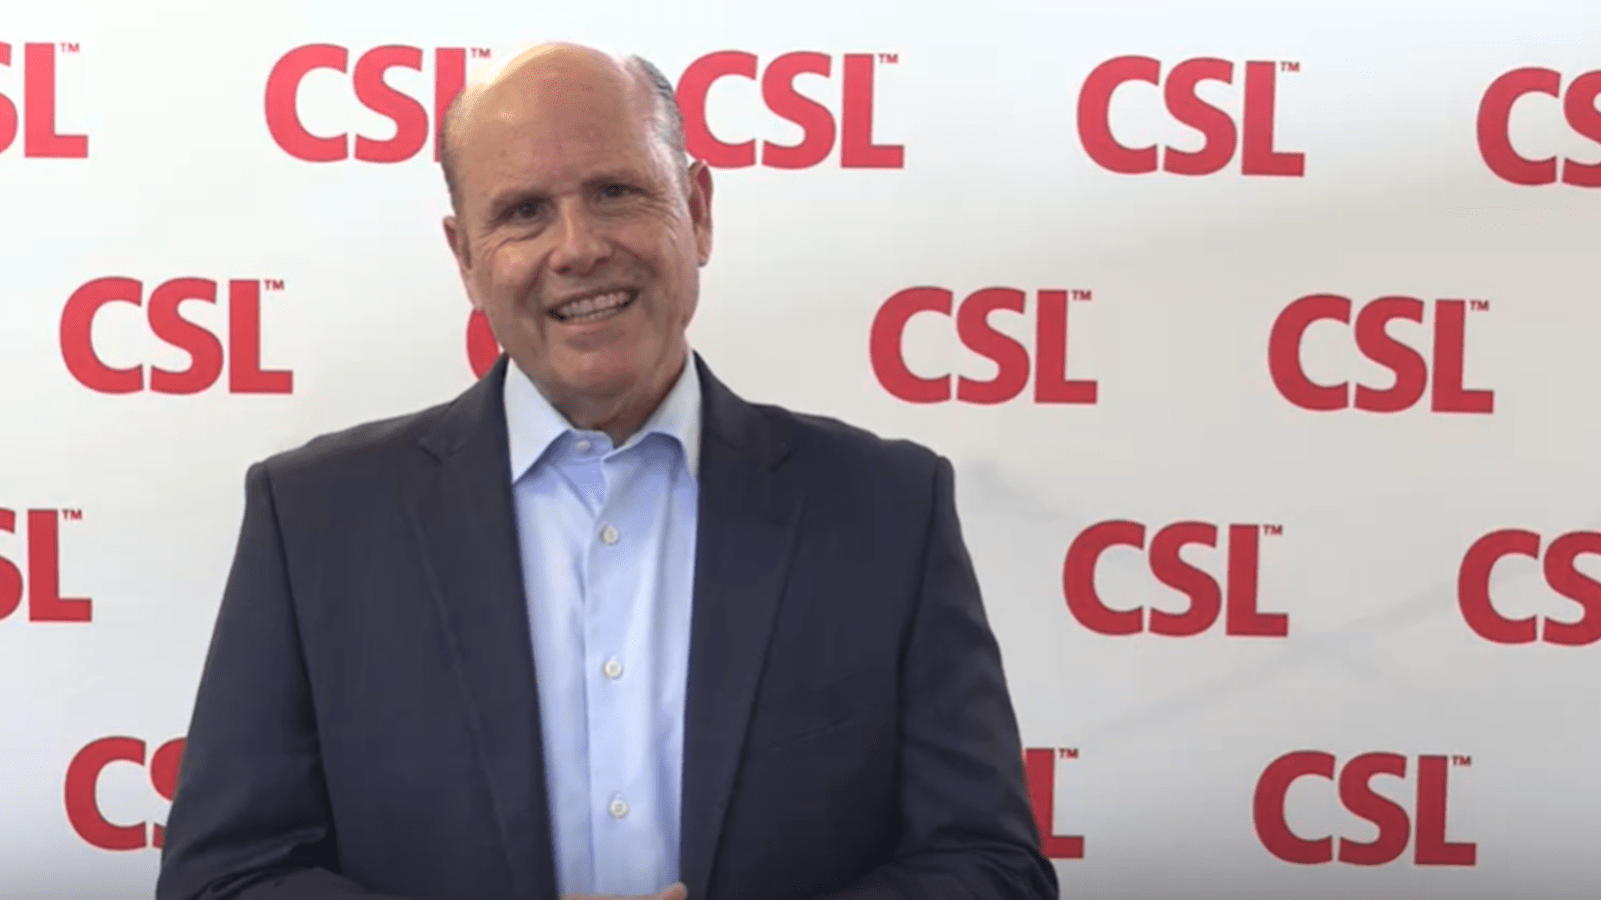 CSL CEO Paul Perreault in front of a CSL background